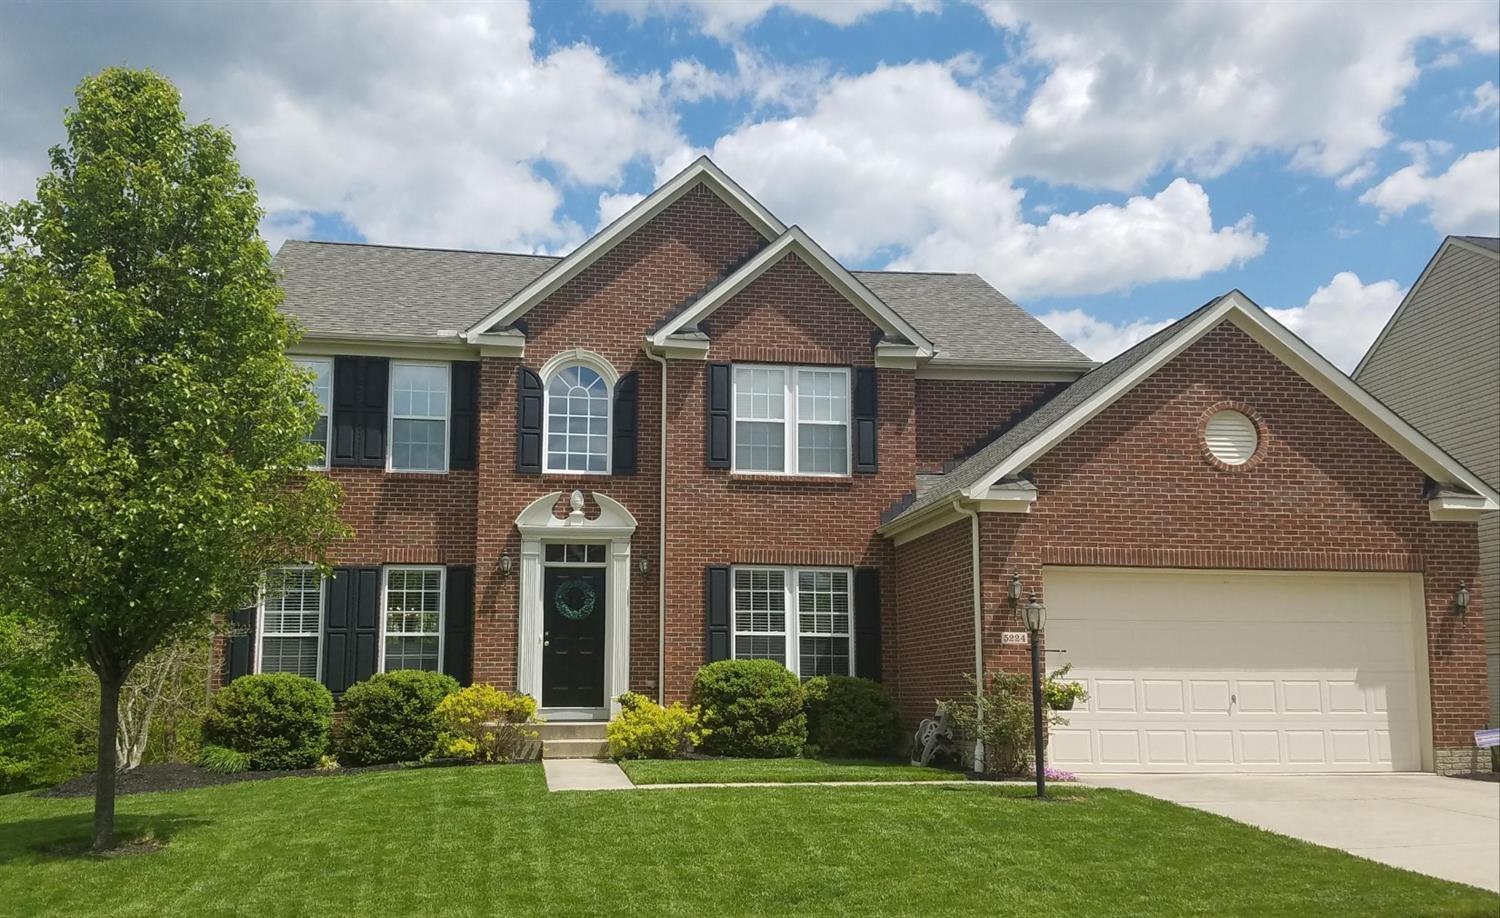 Property for sale at 5224 Terrace Trace Court, Union Twp,  Ohio 45150